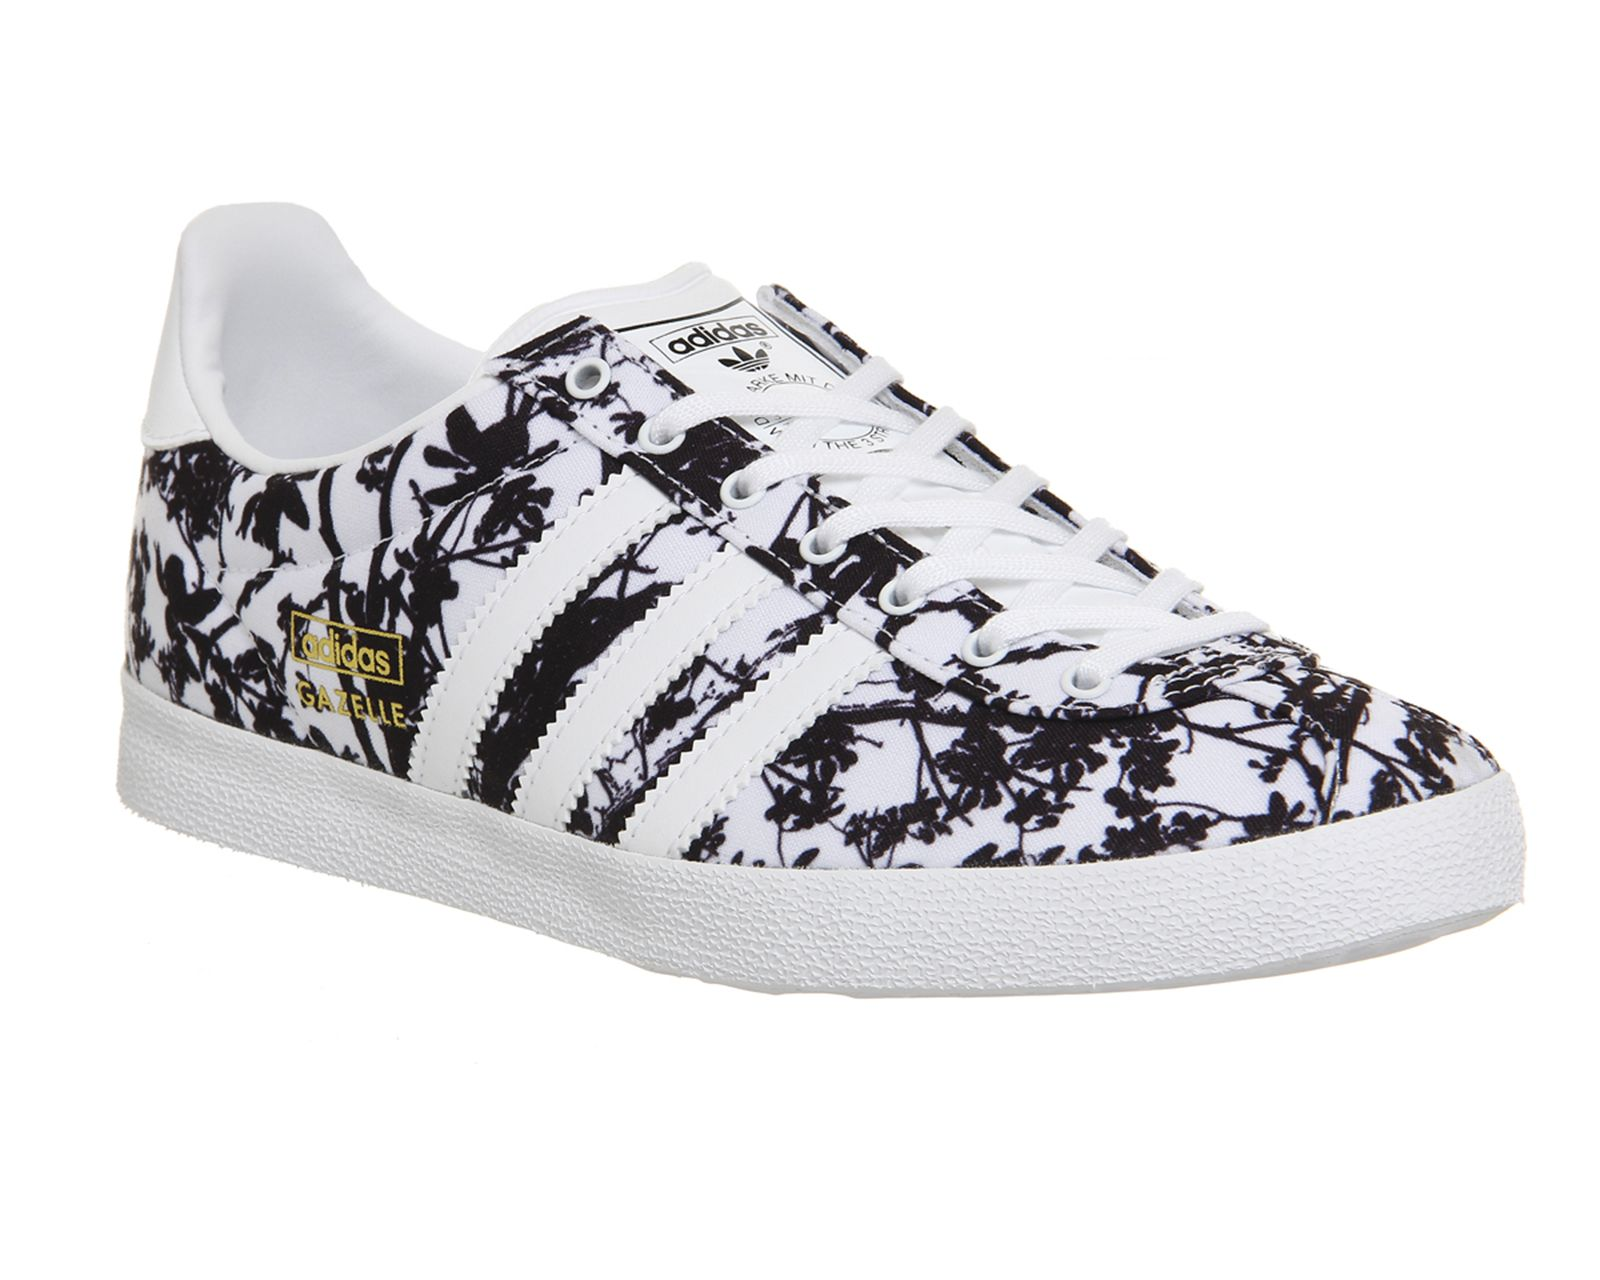 Buy White Black Floral Print Adidas Gazelle Og W from OFFICE.co.uk.